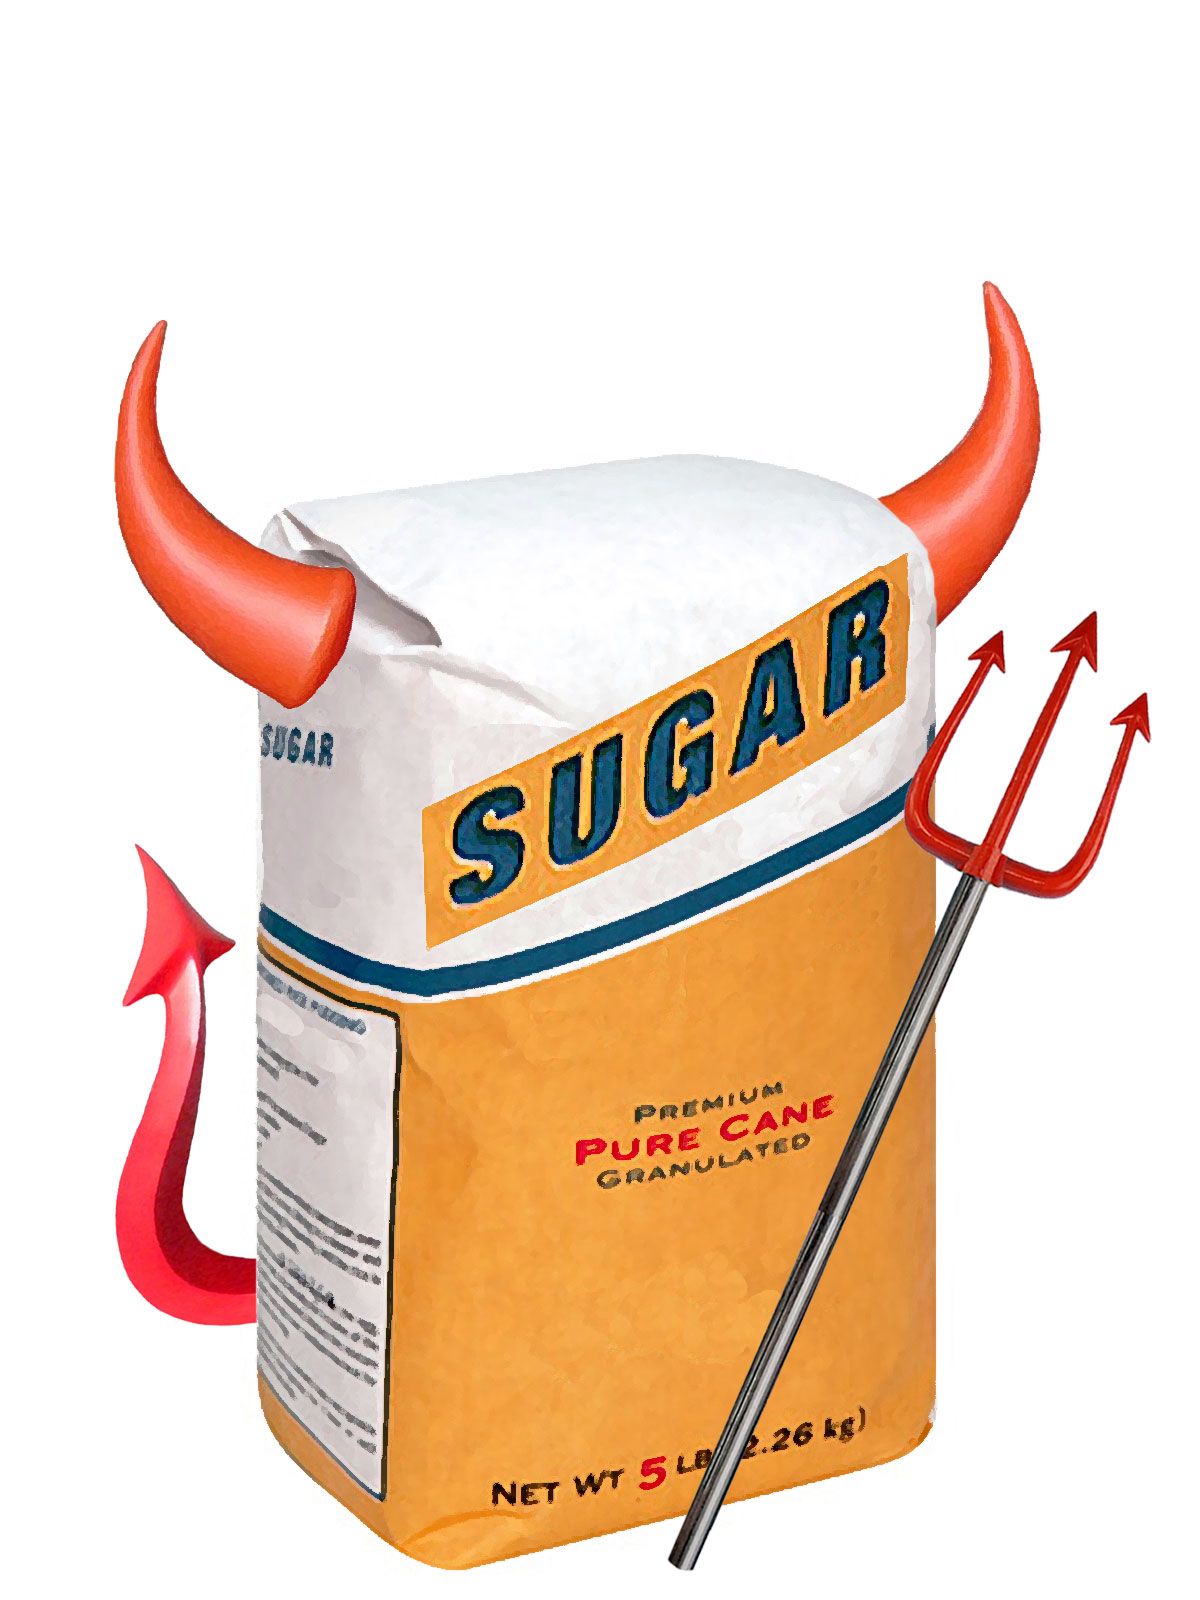 Is Sugar Really The Bad Guy?